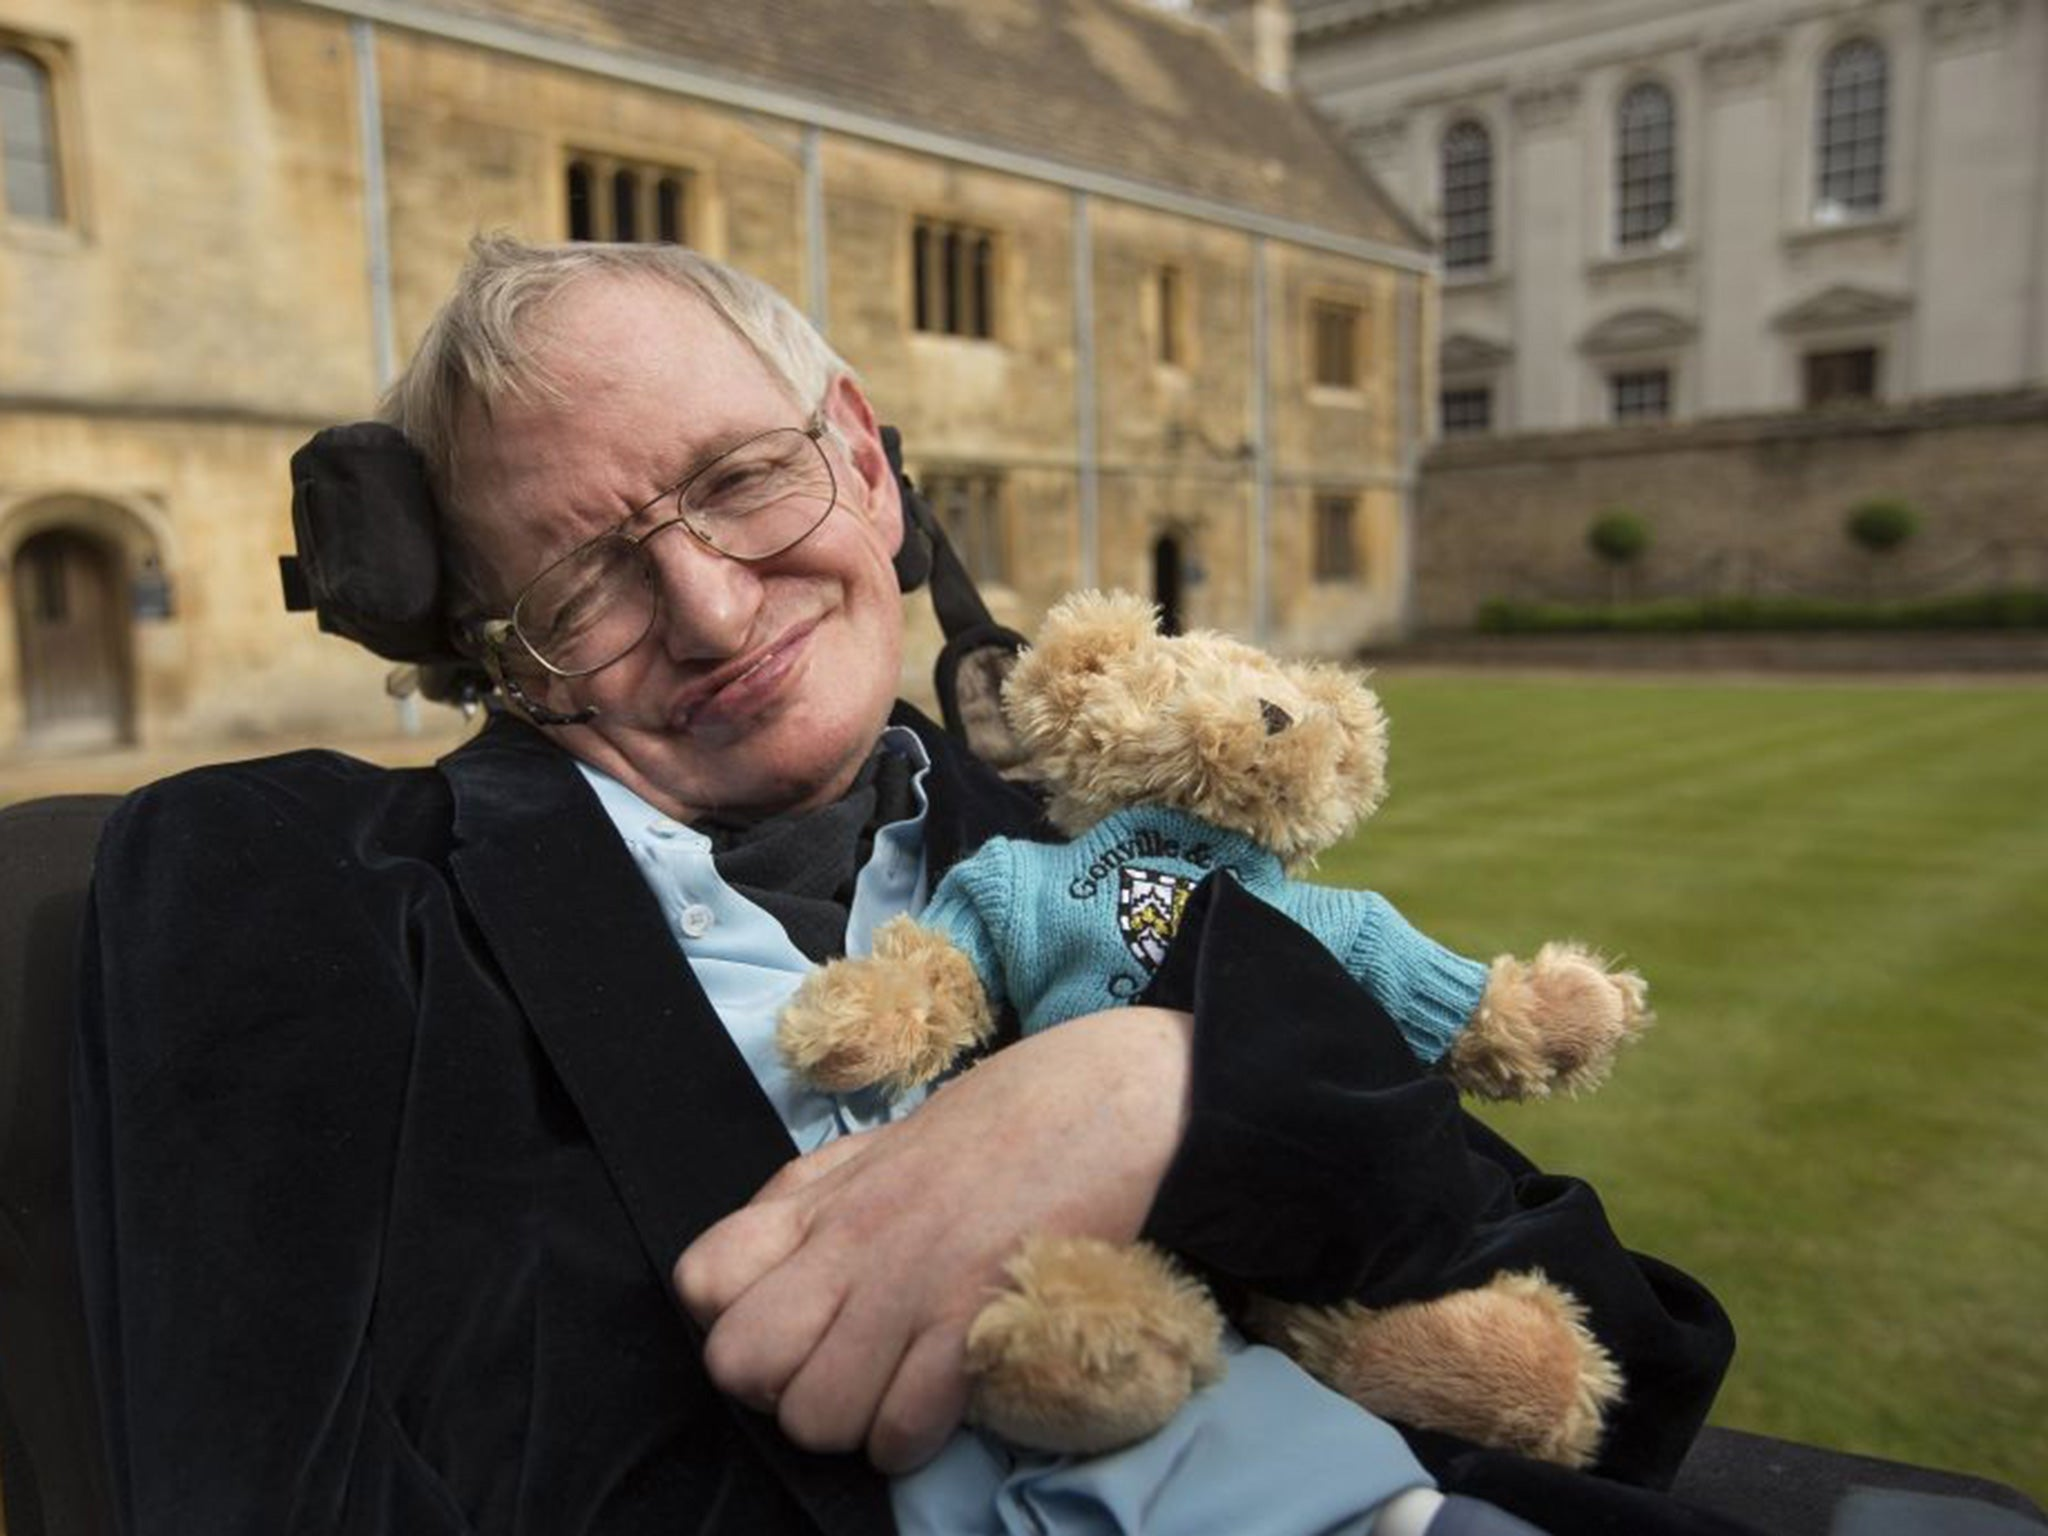 Professor Stephen Hawking died on March 14, 2018, aged 76